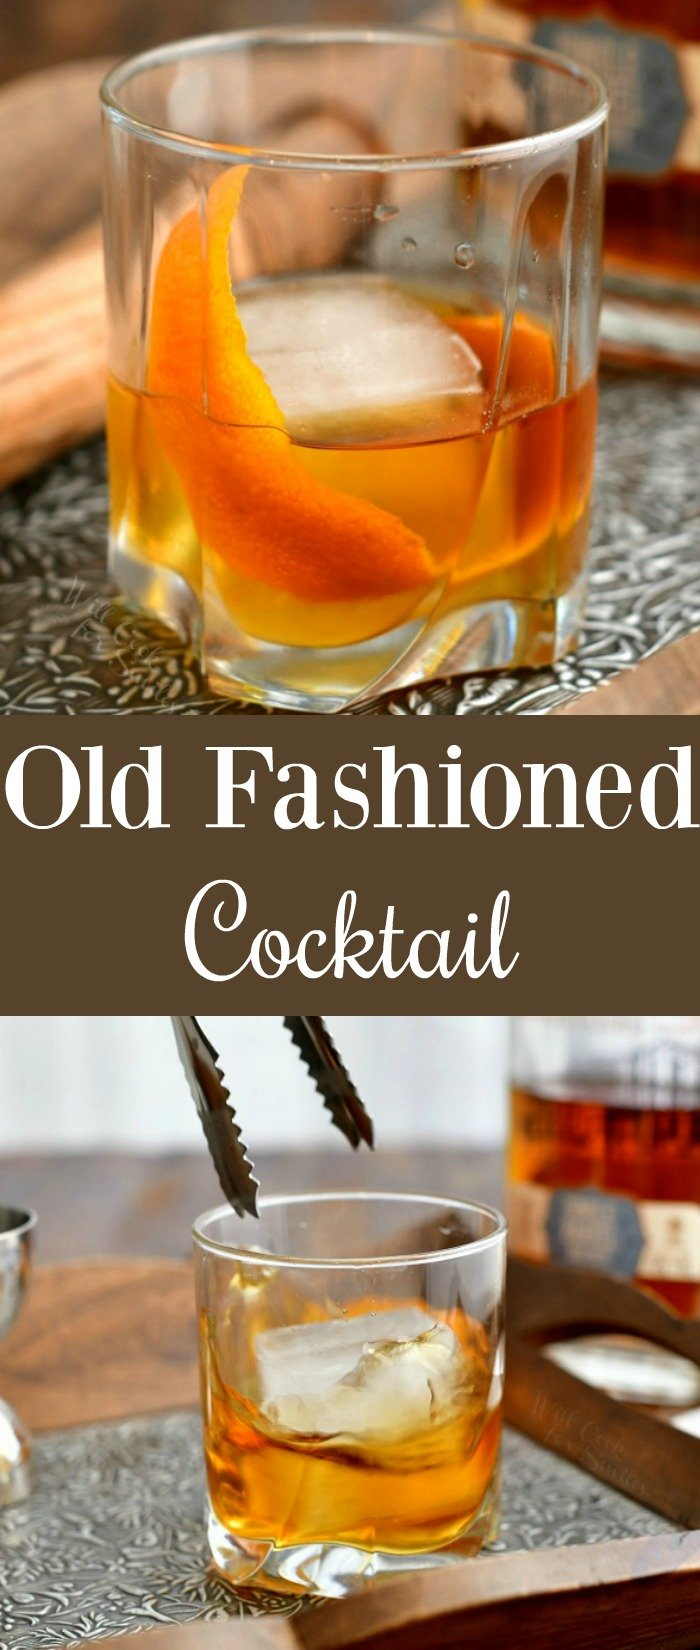 titled photo collage shows Old Fashioned cocktail in glass over ice